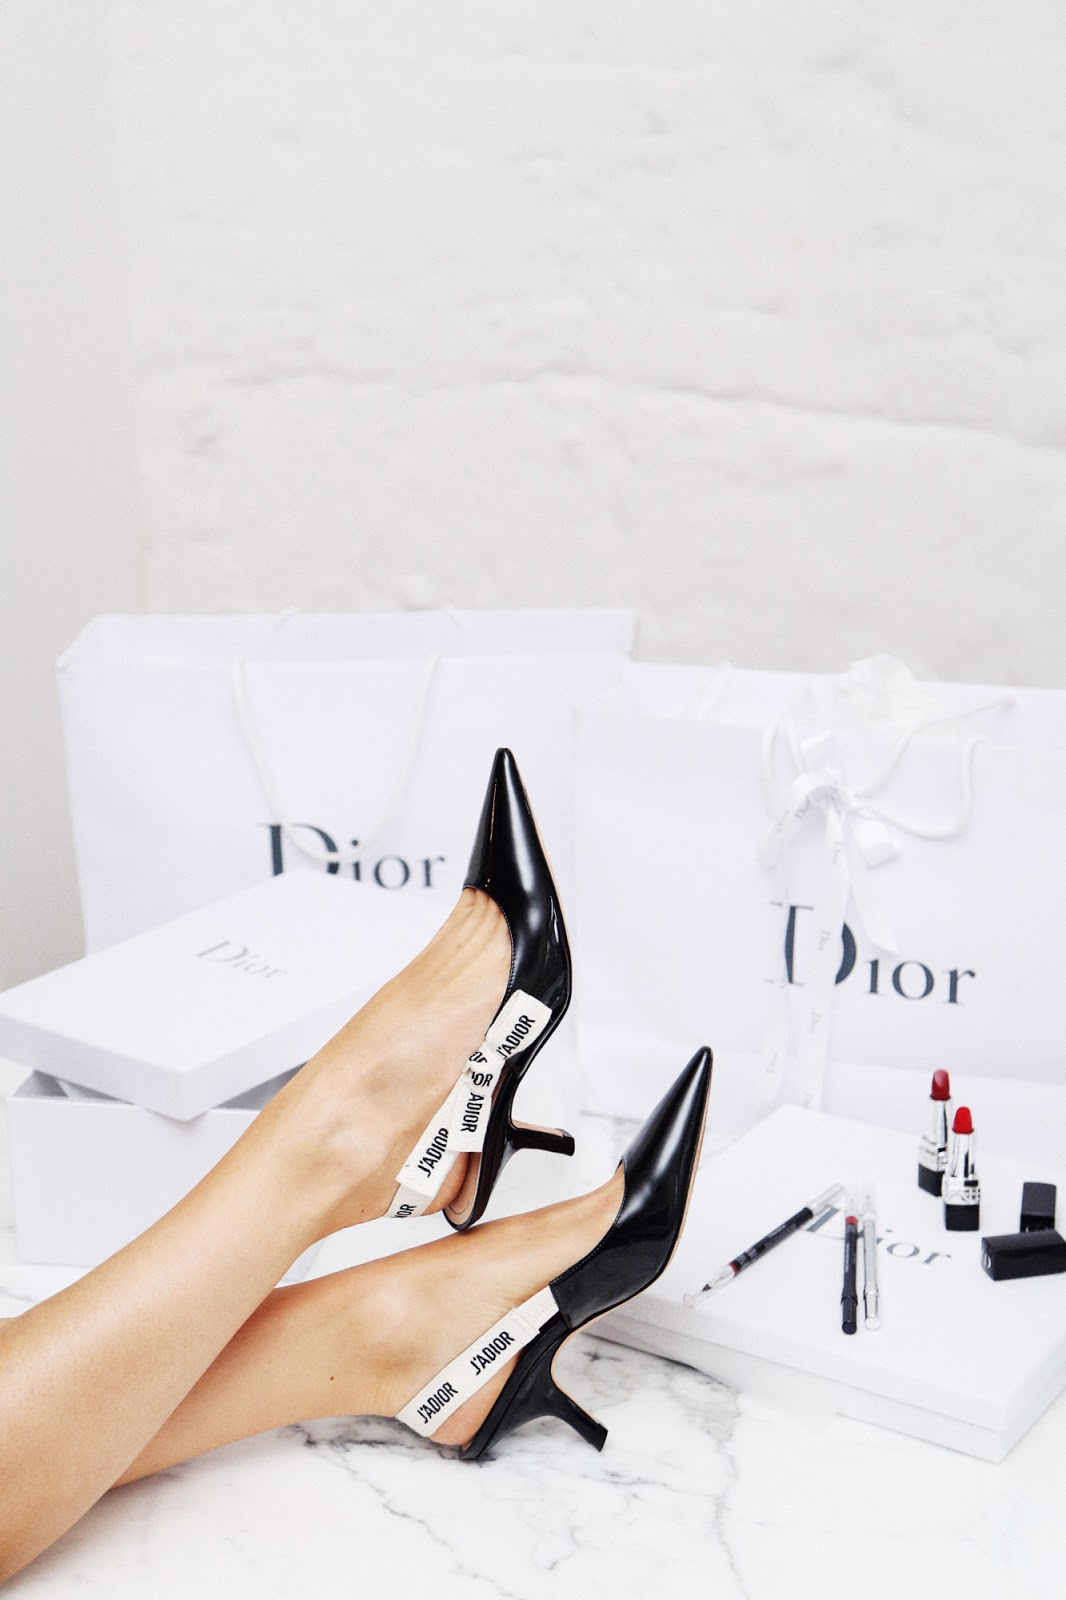 christian-dior-jadior-kitten-heel-pumps